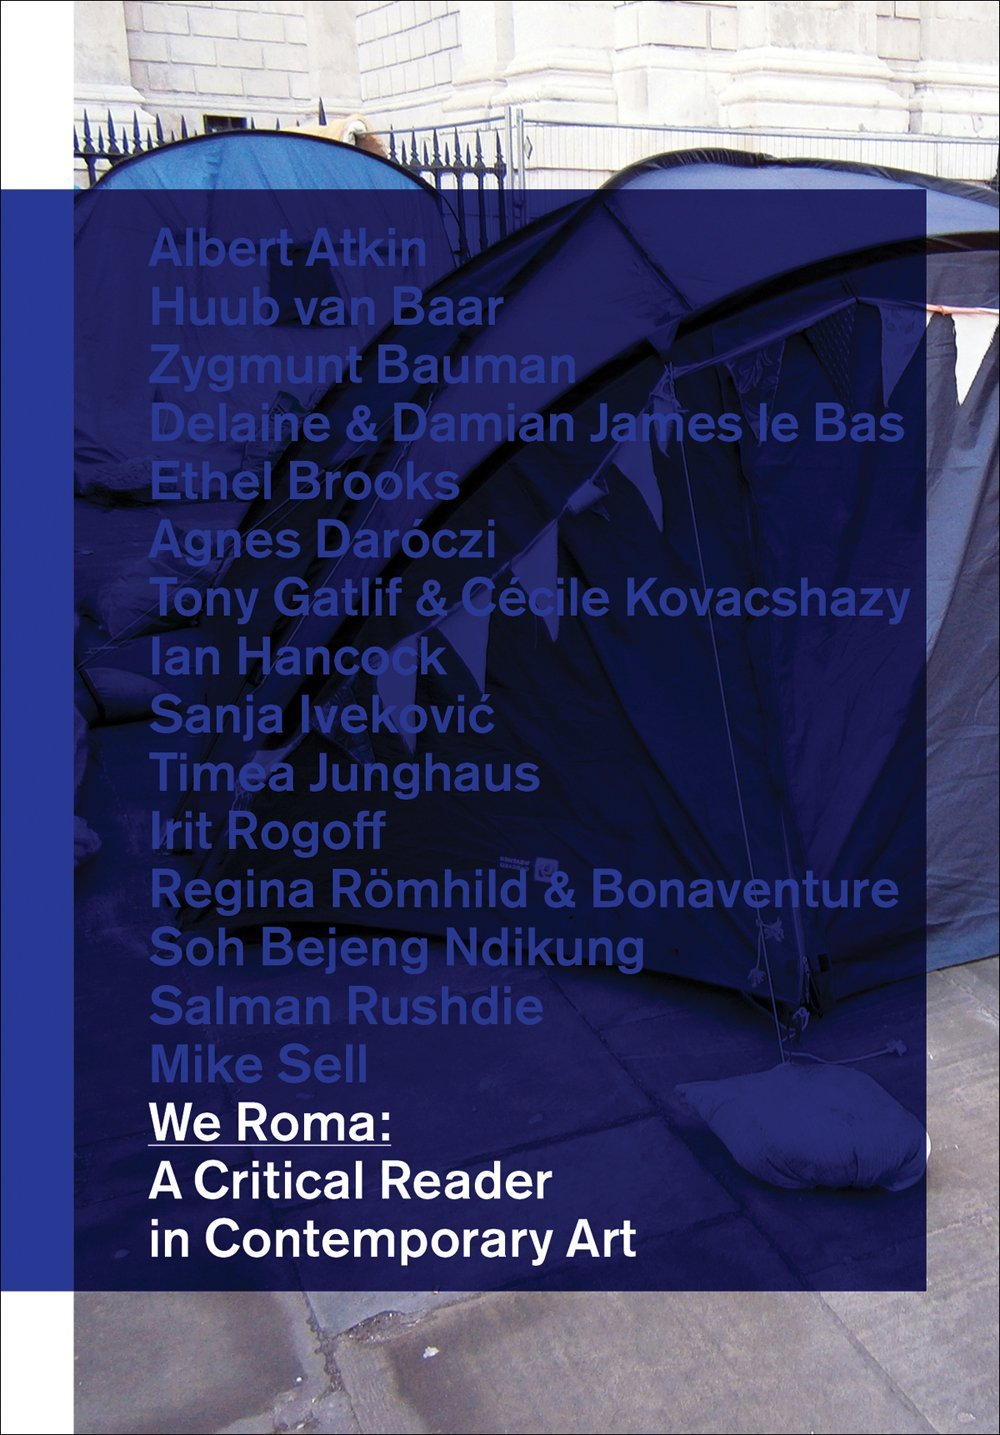 We Roma: A Critical Reader in Contemporary Art